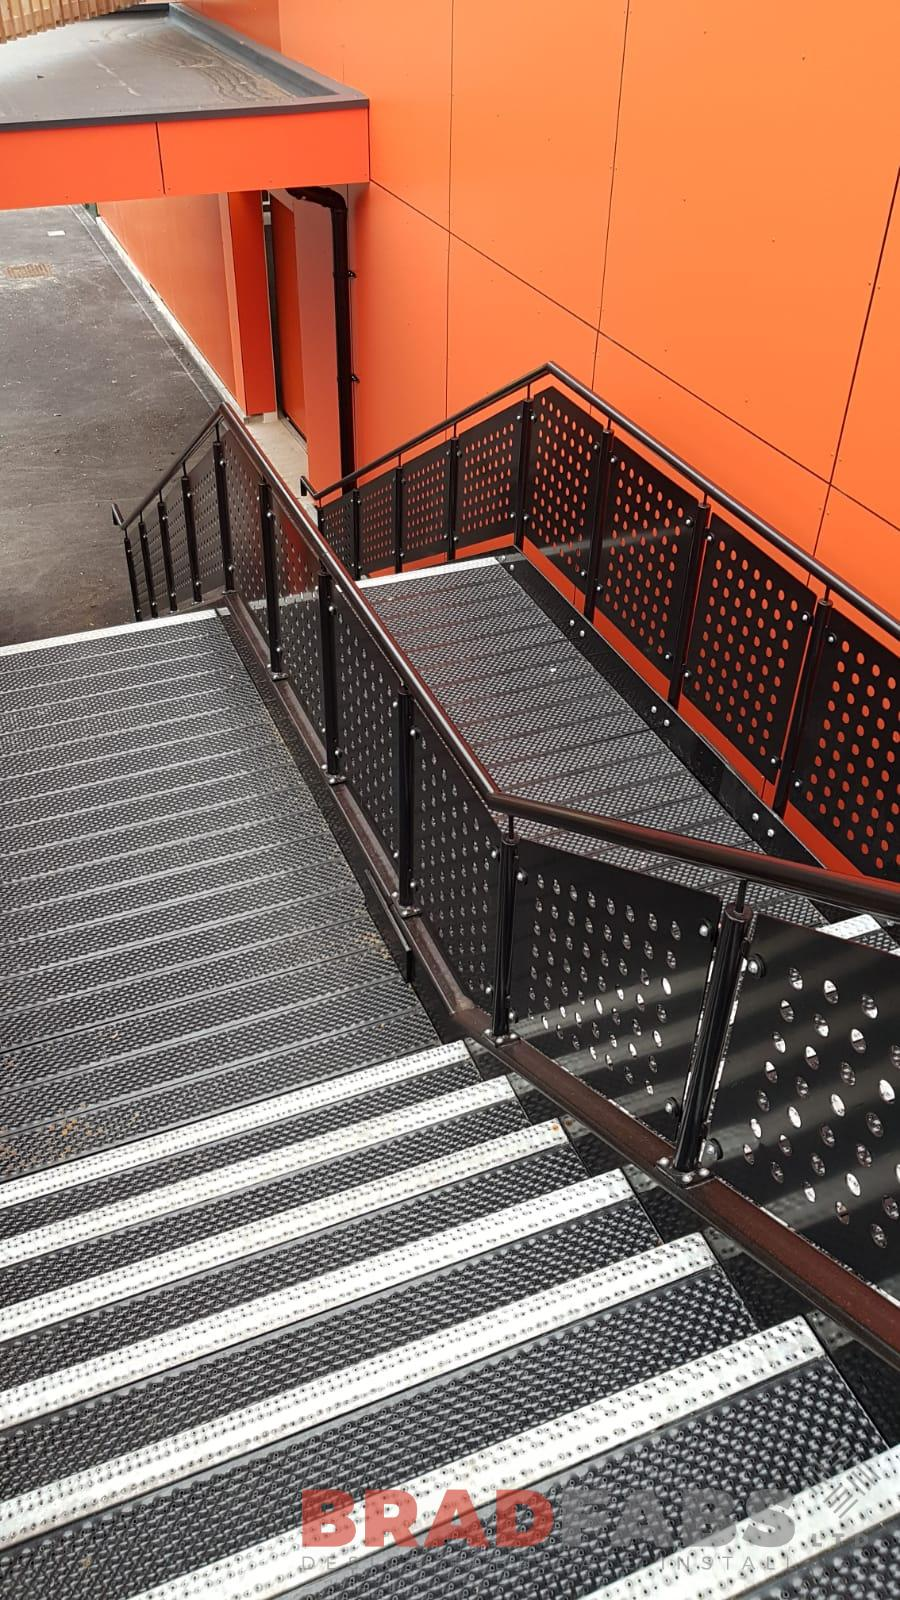 Bradfabs external straight staircase, mild steel, galvanised and powder coated with BNOP5 flooring and laser cut feature balustrade